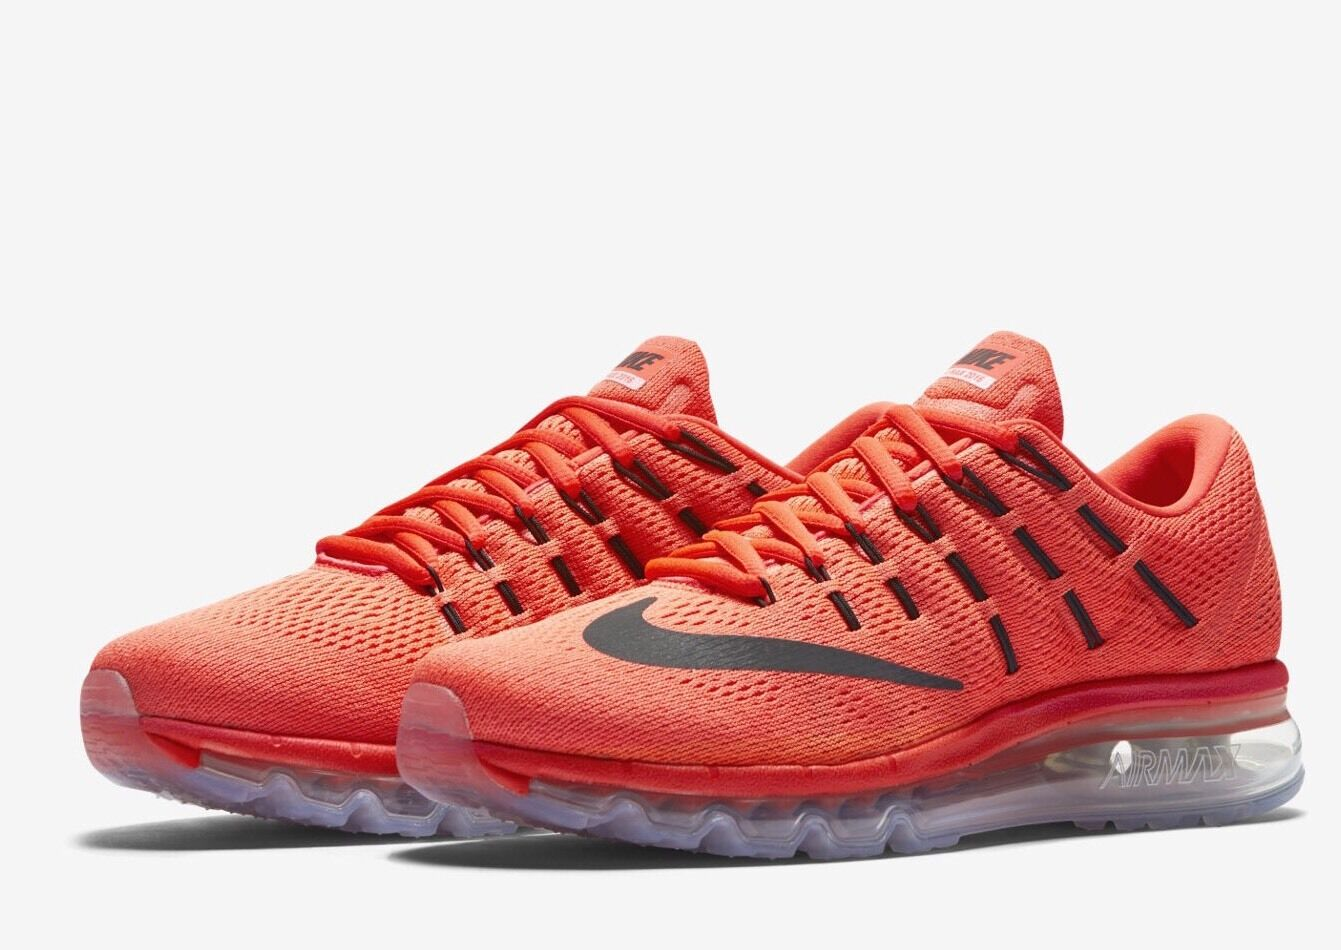 Nike Wmns Air Max 2016 Bright Crimson Black Black Black Size UK 4.5 EU 38 US 7 806772-600 fe6341